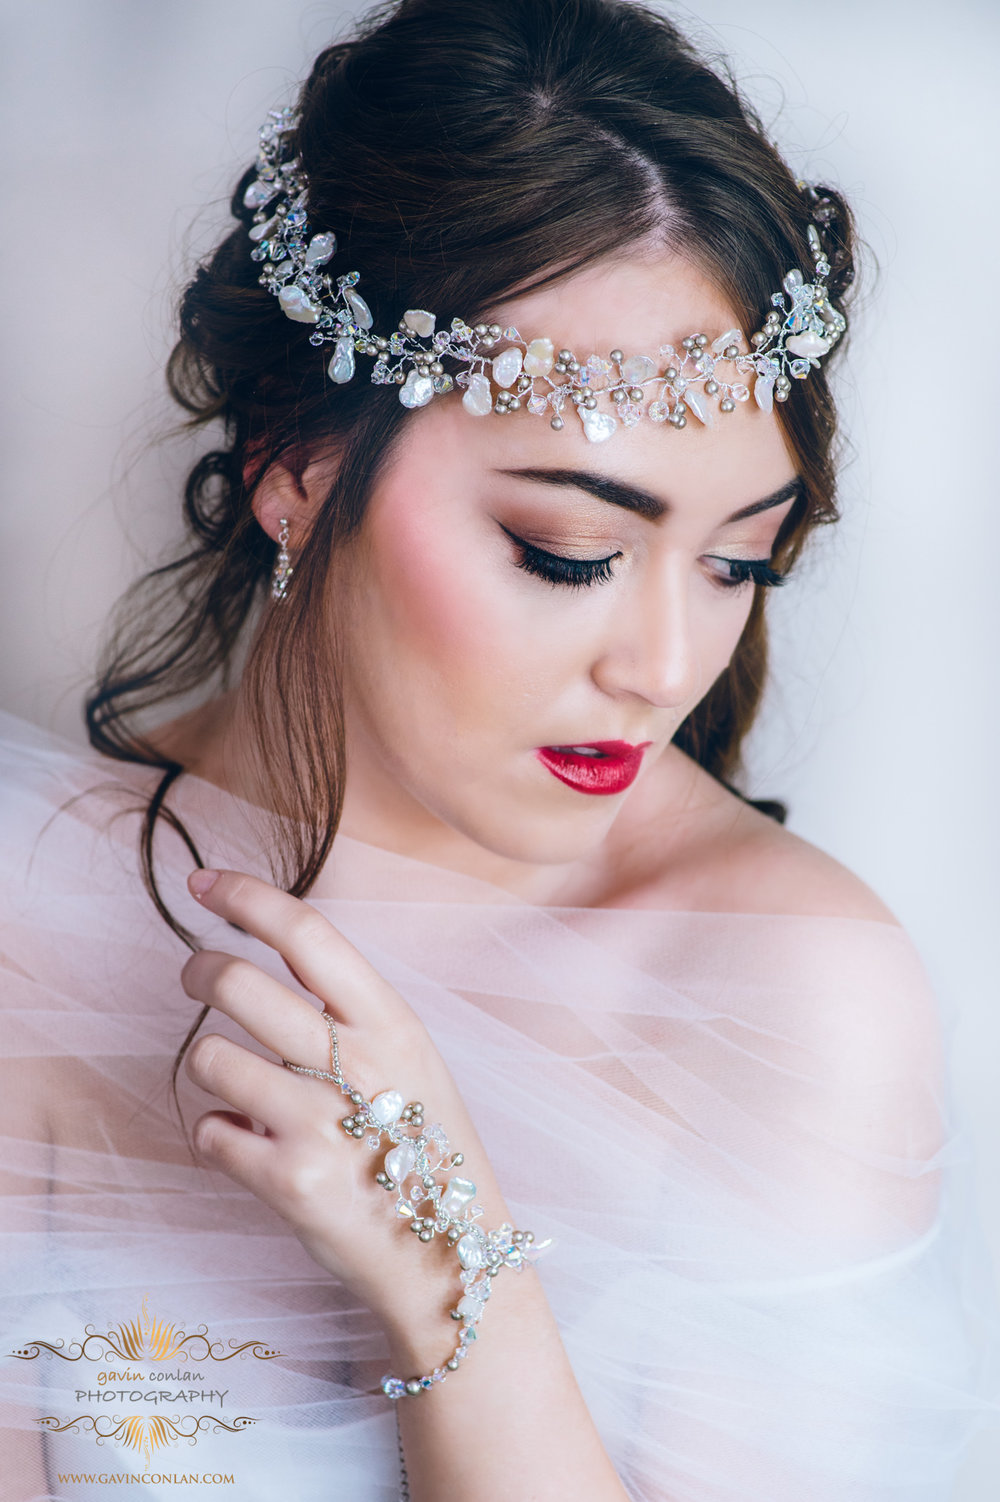 creative-bridal-hair-make-up-jewellery-photo-shoot-gavinconlanphotography-15